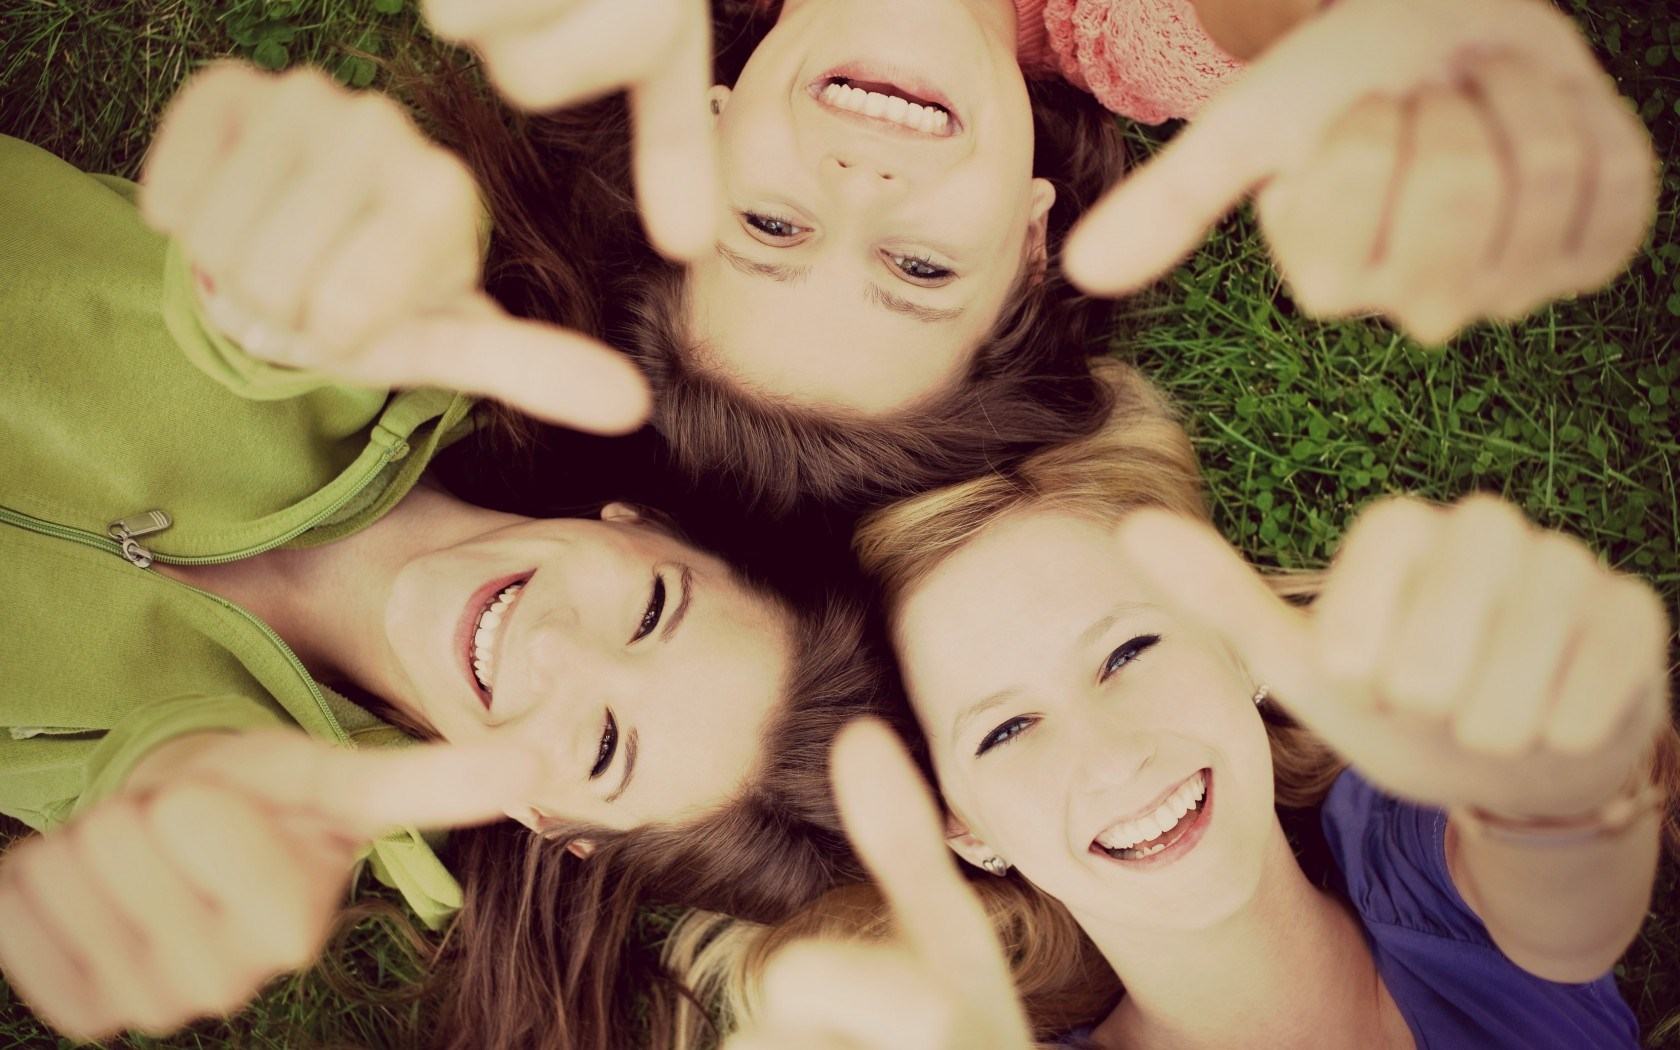 mood-girls-smile-happiness-nature-hd-wallpaper